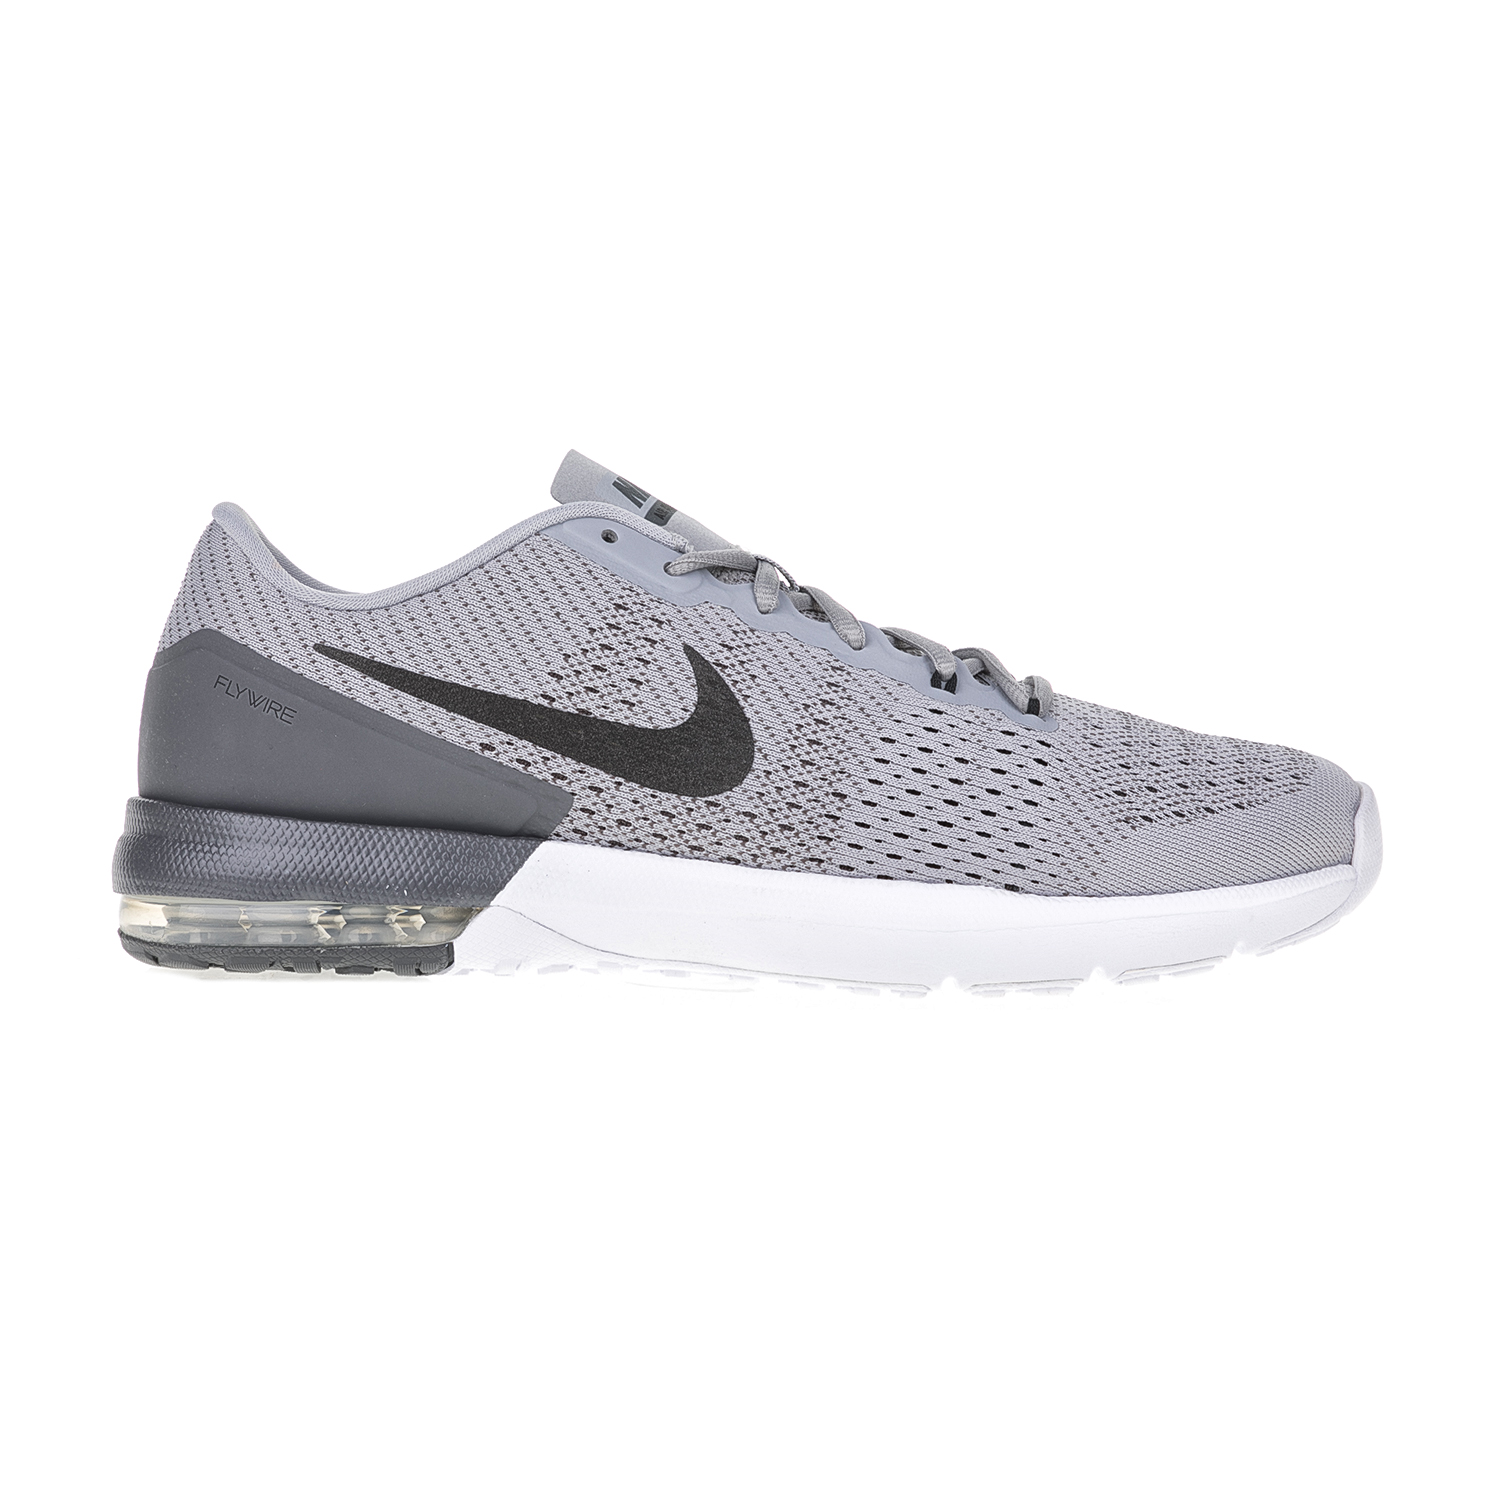 -45% Factory Outlet NIKE – Ανδρικά αθλητικά παπούτσια NIKE AIR MAX TYPHA  γκρι 1586fe66e13